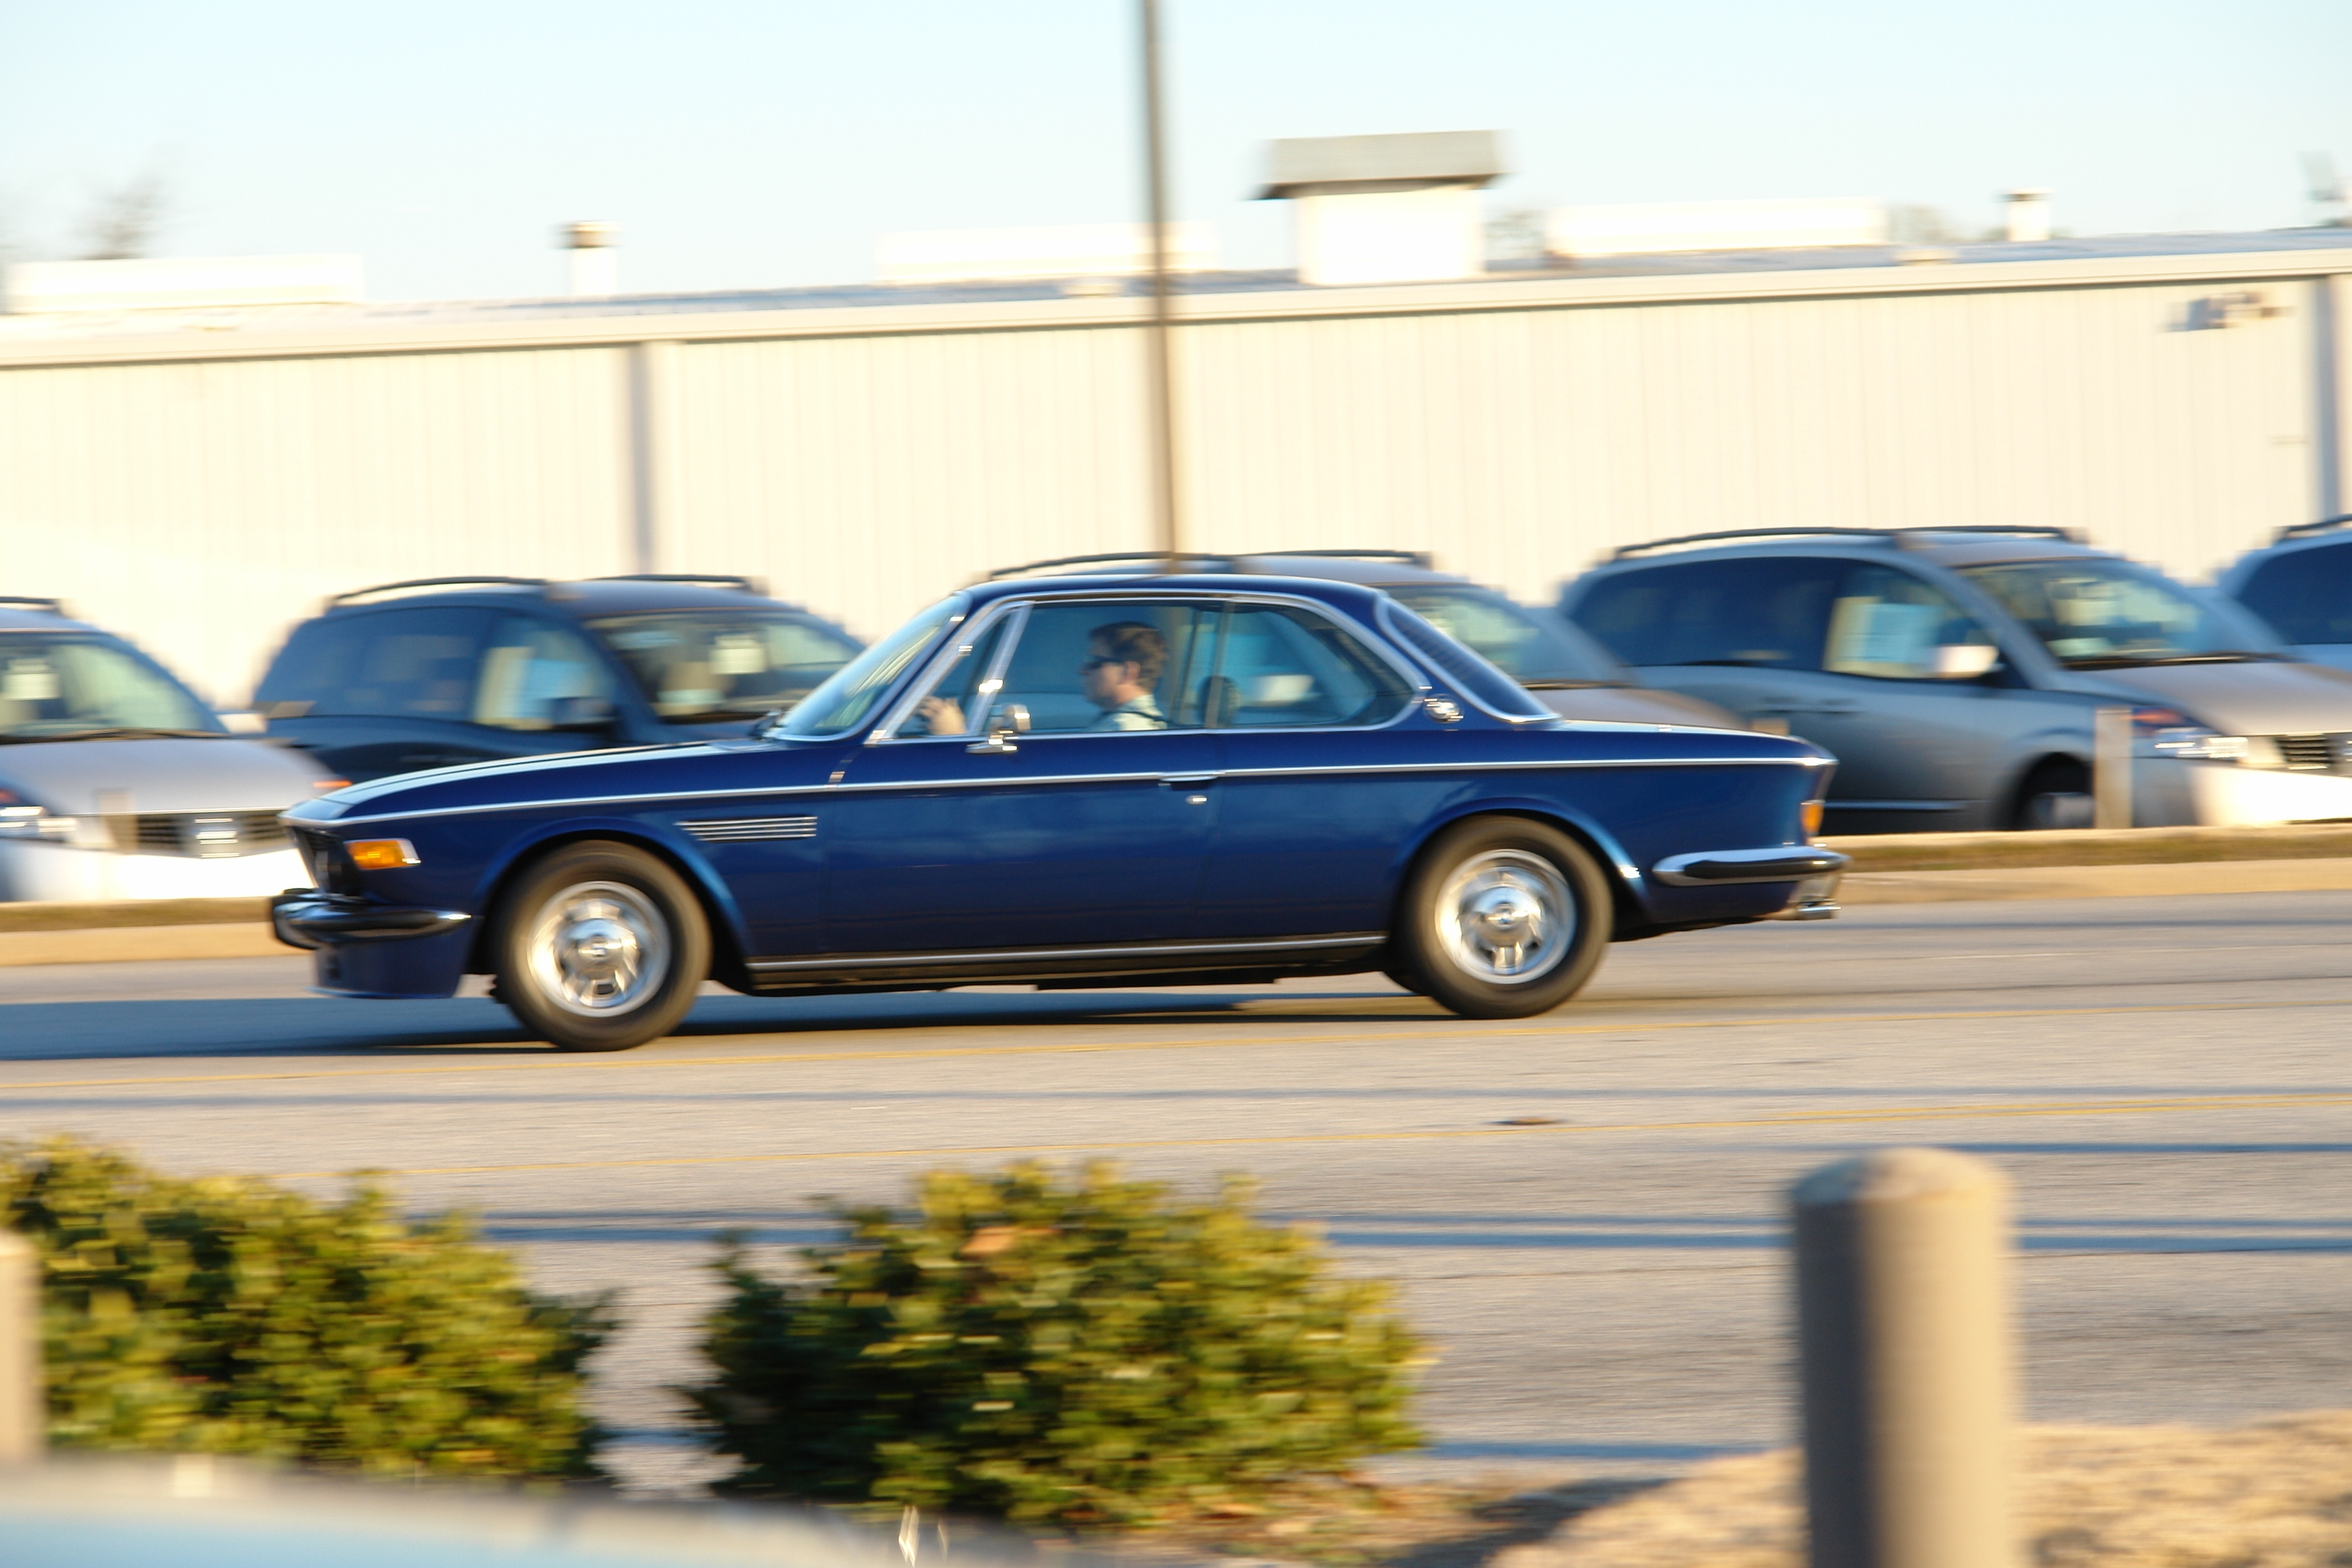 69brrrd 1972 BMW 3.0CSI 14154615